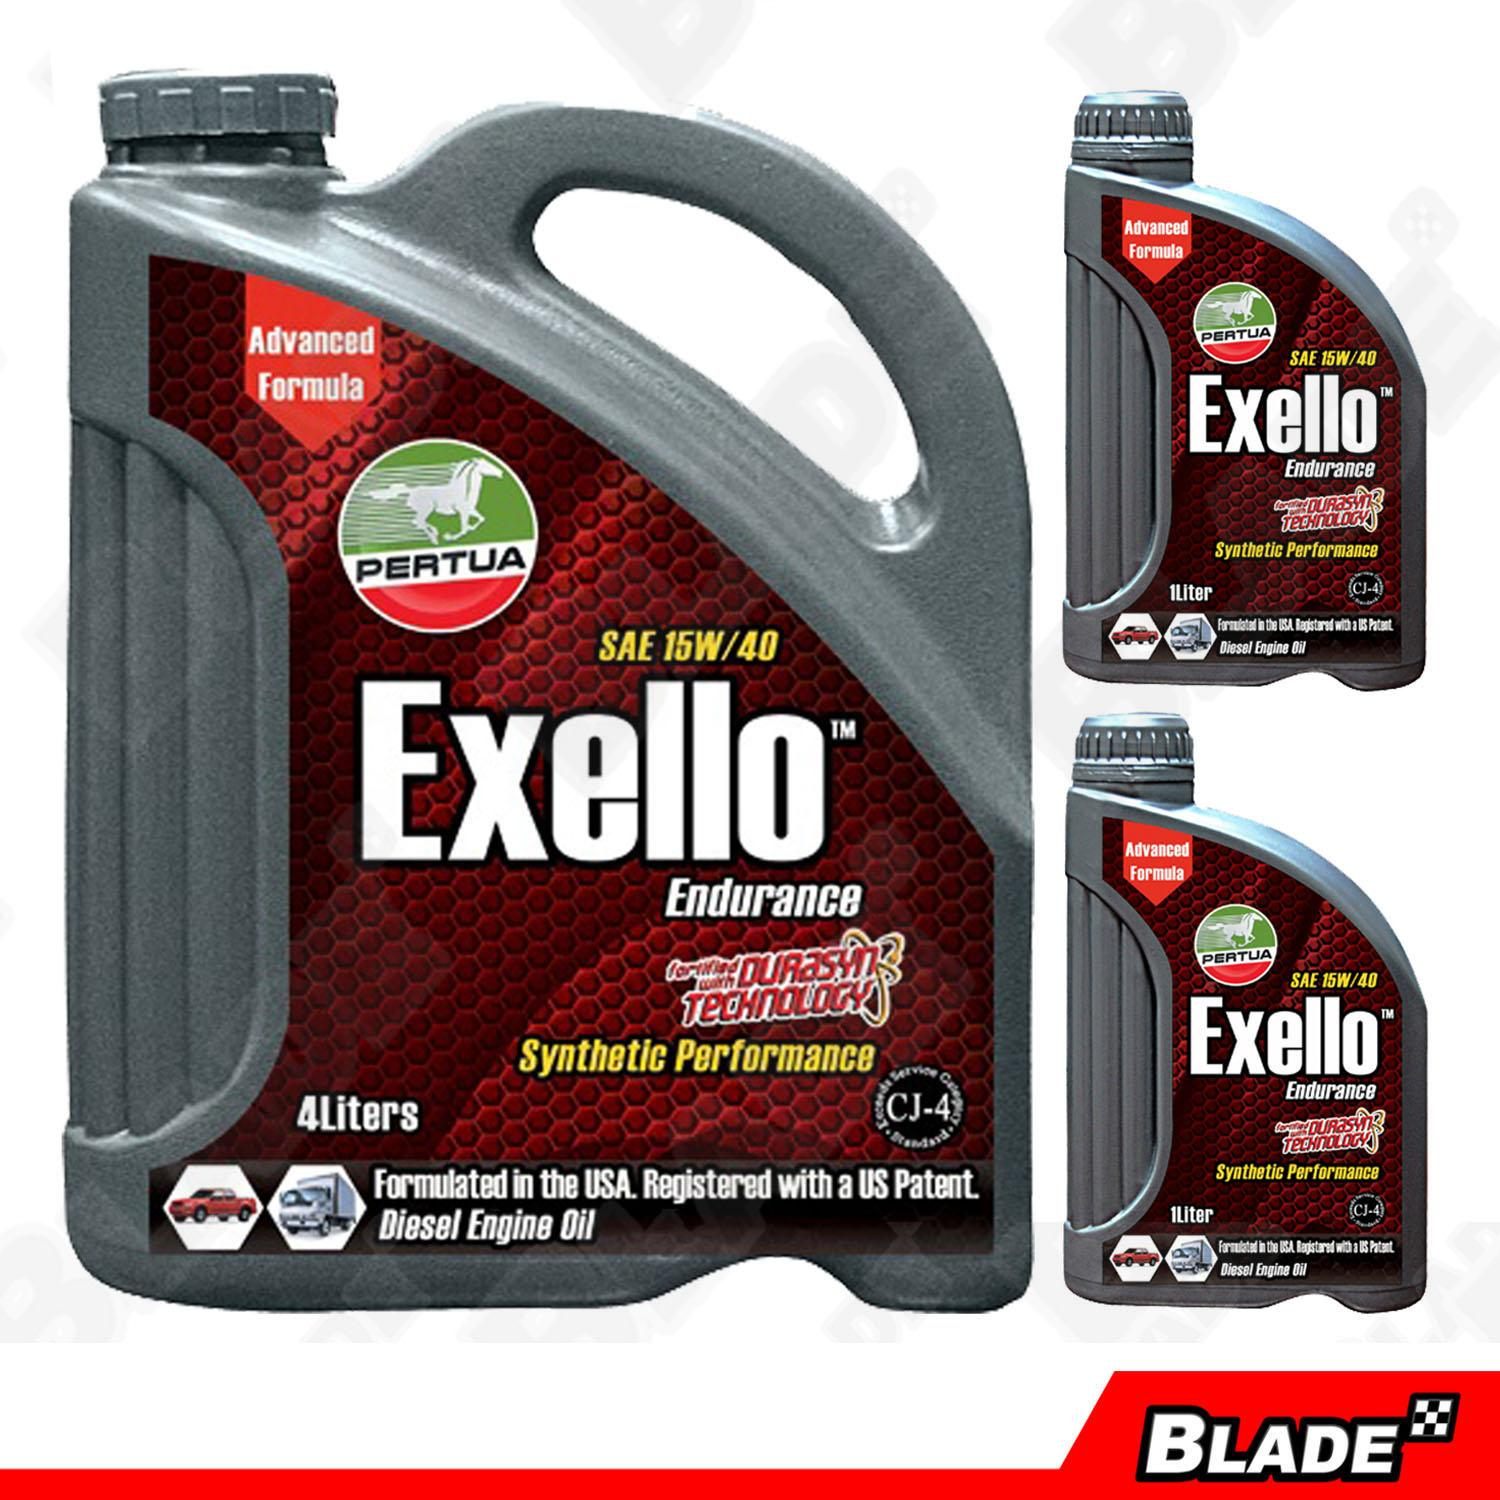 Engine Oil For Sale Motor Online Brands Prices Reviews In Shell Helix Hx5 15w 40 Api Sn Oli Mobil Mesin Bensin 4 Liter Pertua Exello Synthetic Performance Diesel Sae 6 Liters